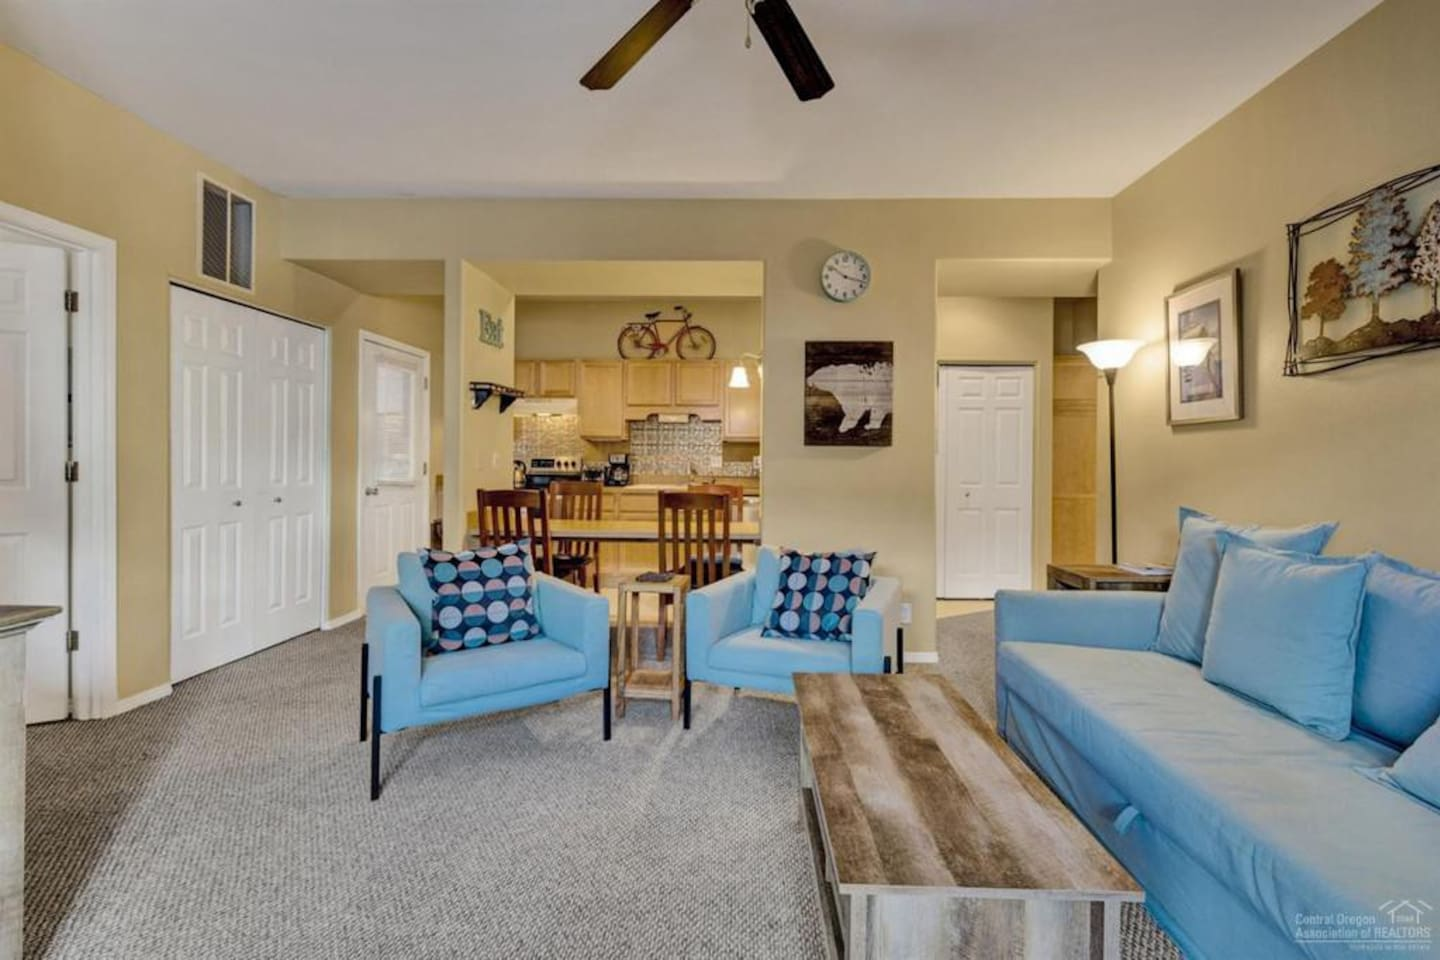 Great open living space with plenty of seating